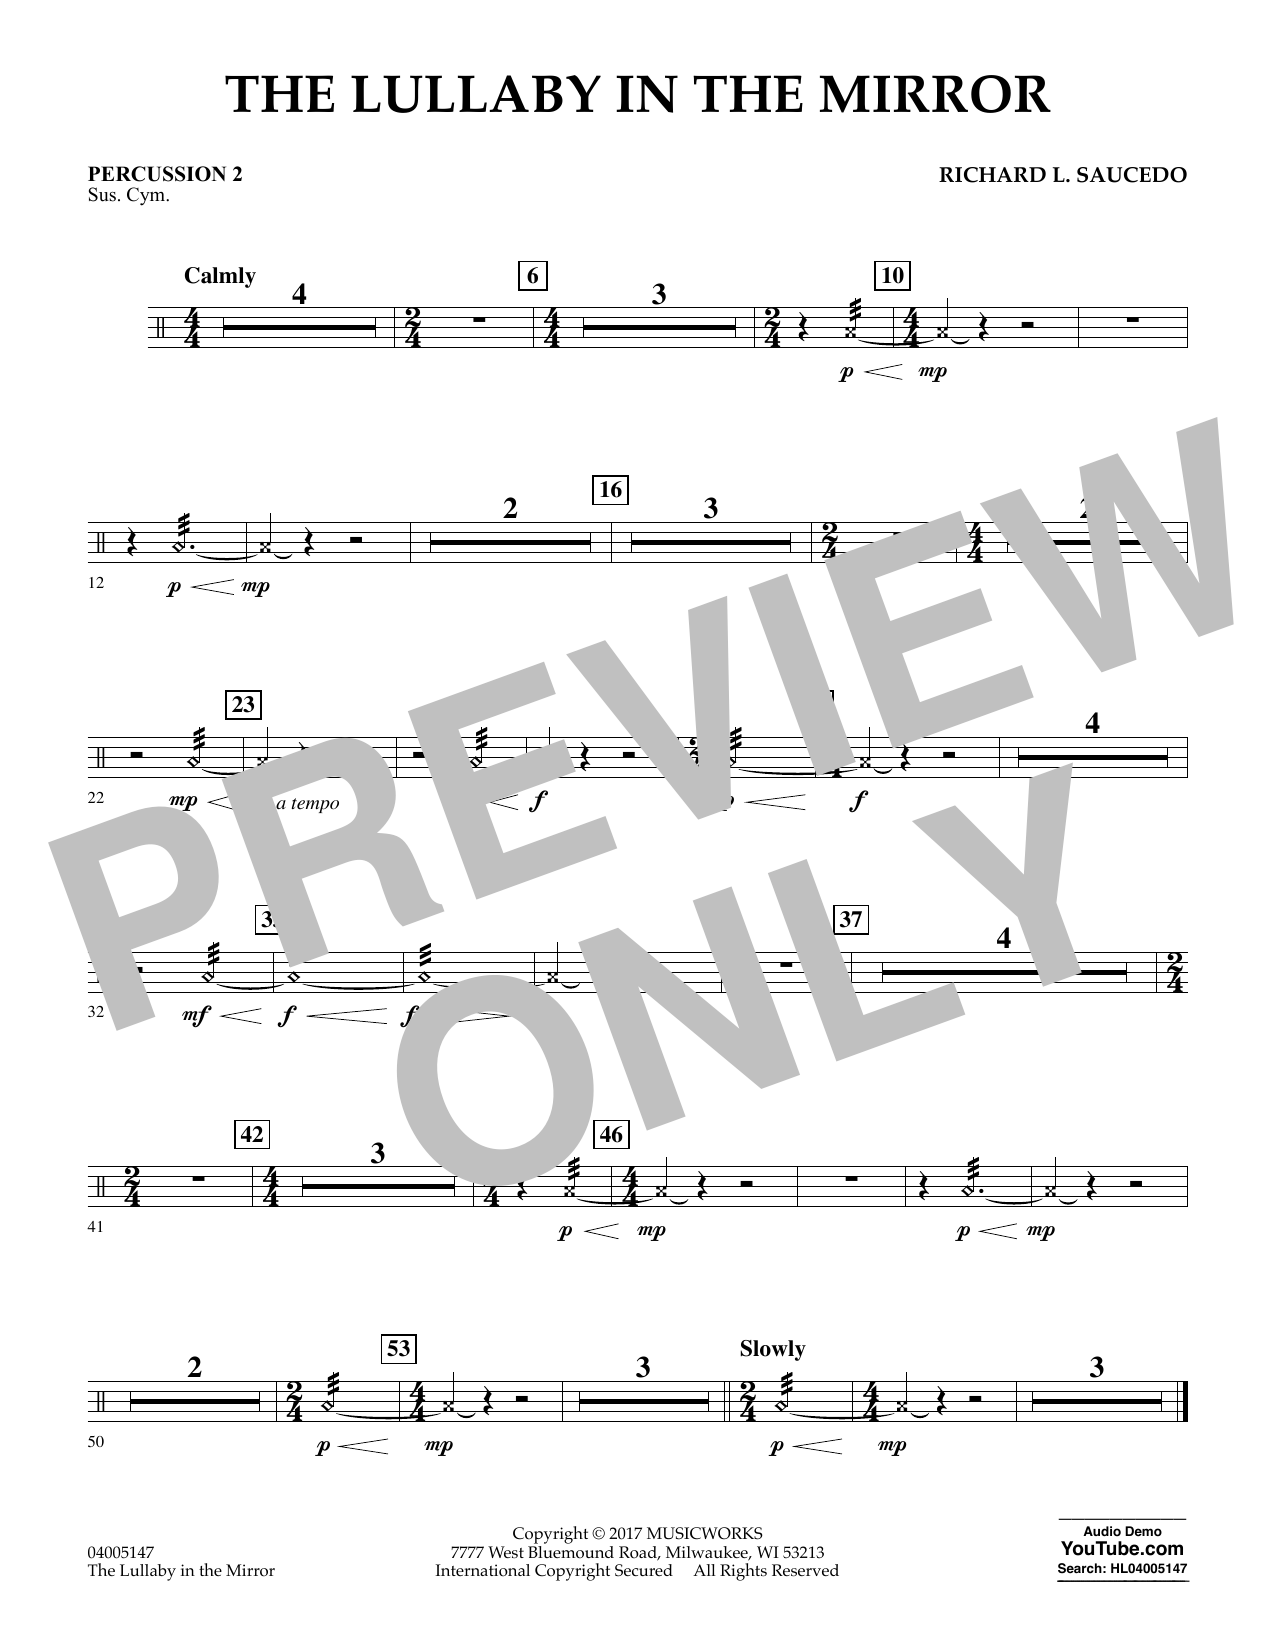 The Lullaby in the Mirror - Percussion 2 Sheet Music